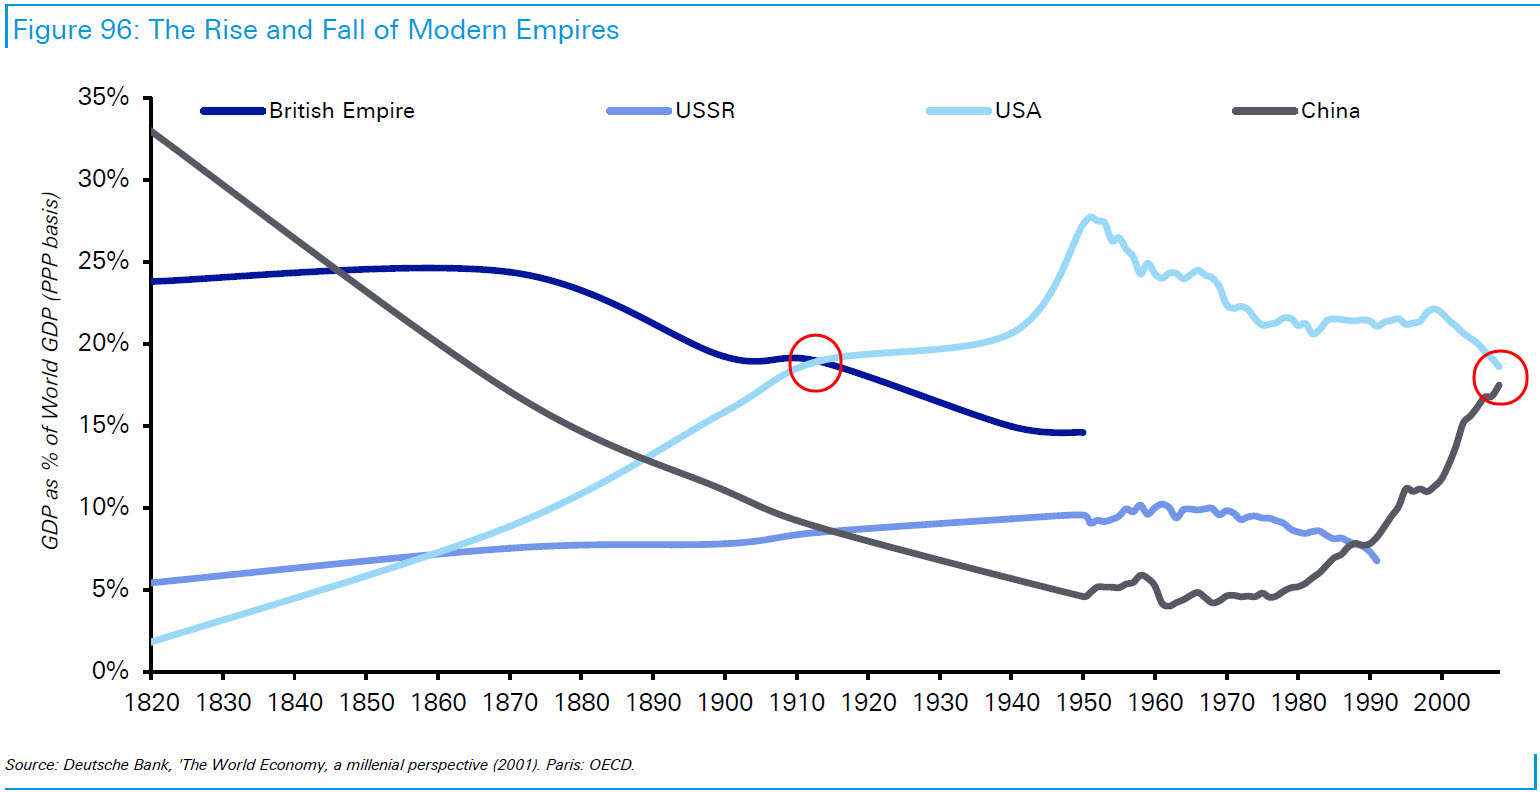 The rise and fall of empires